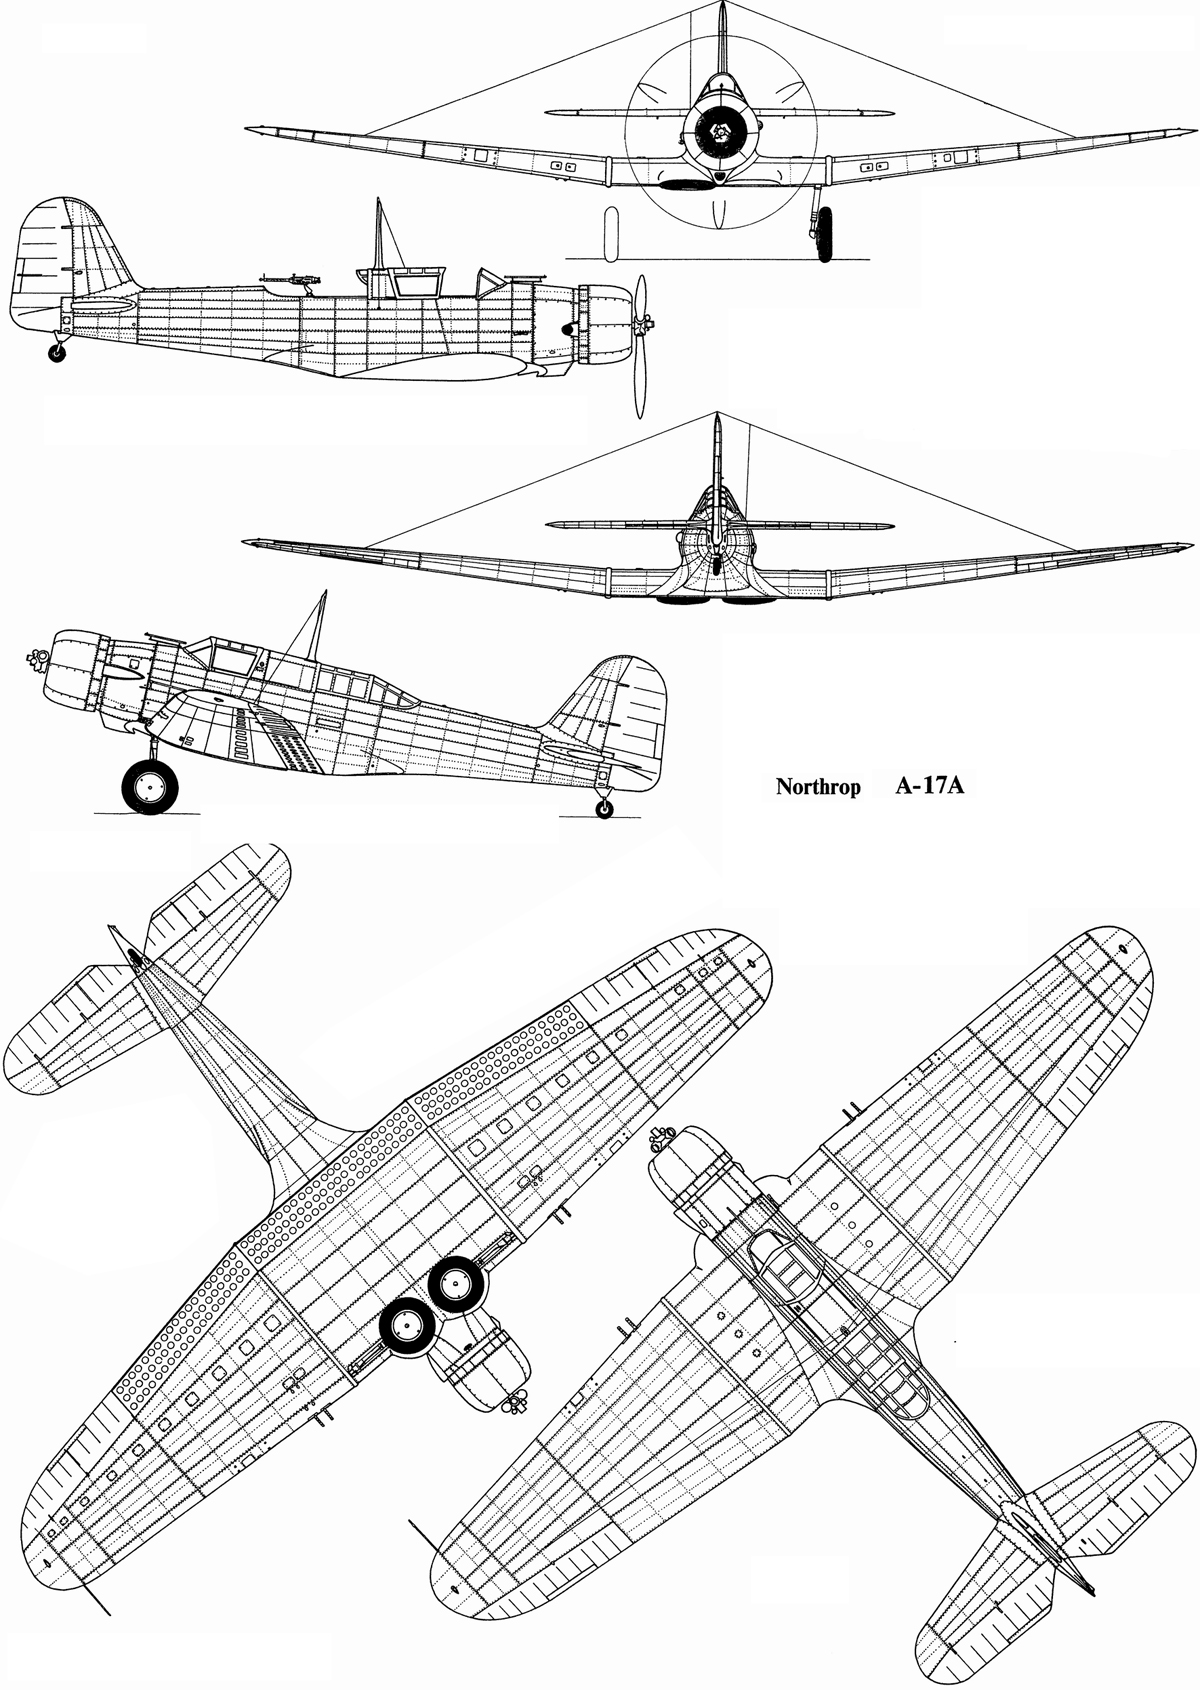 Six Northrop Aircraft Corp. drawings of a Nomad A-17A aircraft. IMAGE: Northrop Aircraft Corporation